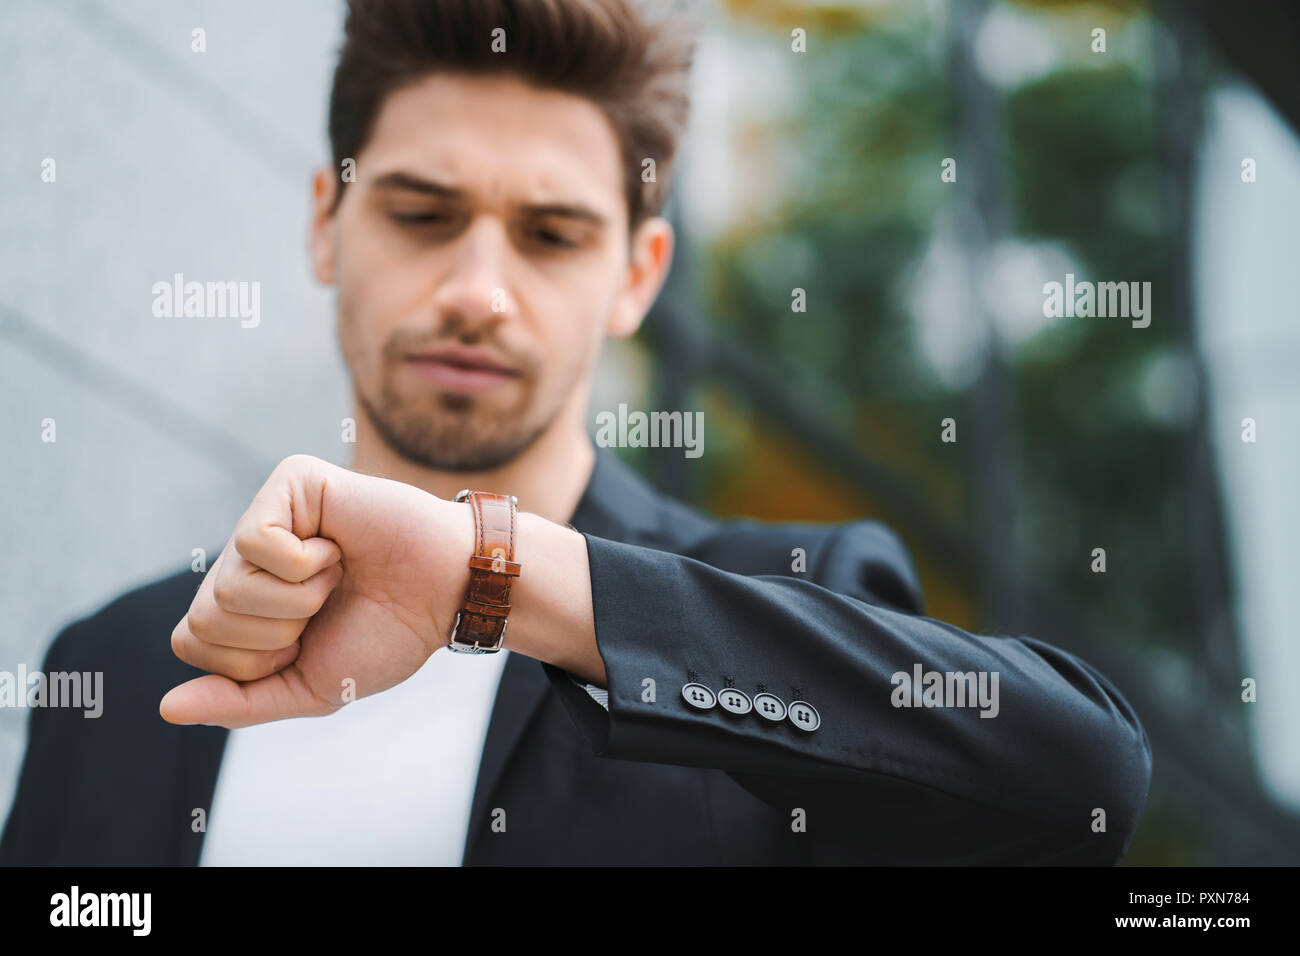 Handsome businessman or student looks at watch. Young man in hurry late for work. Male model on office building background - Stock Image